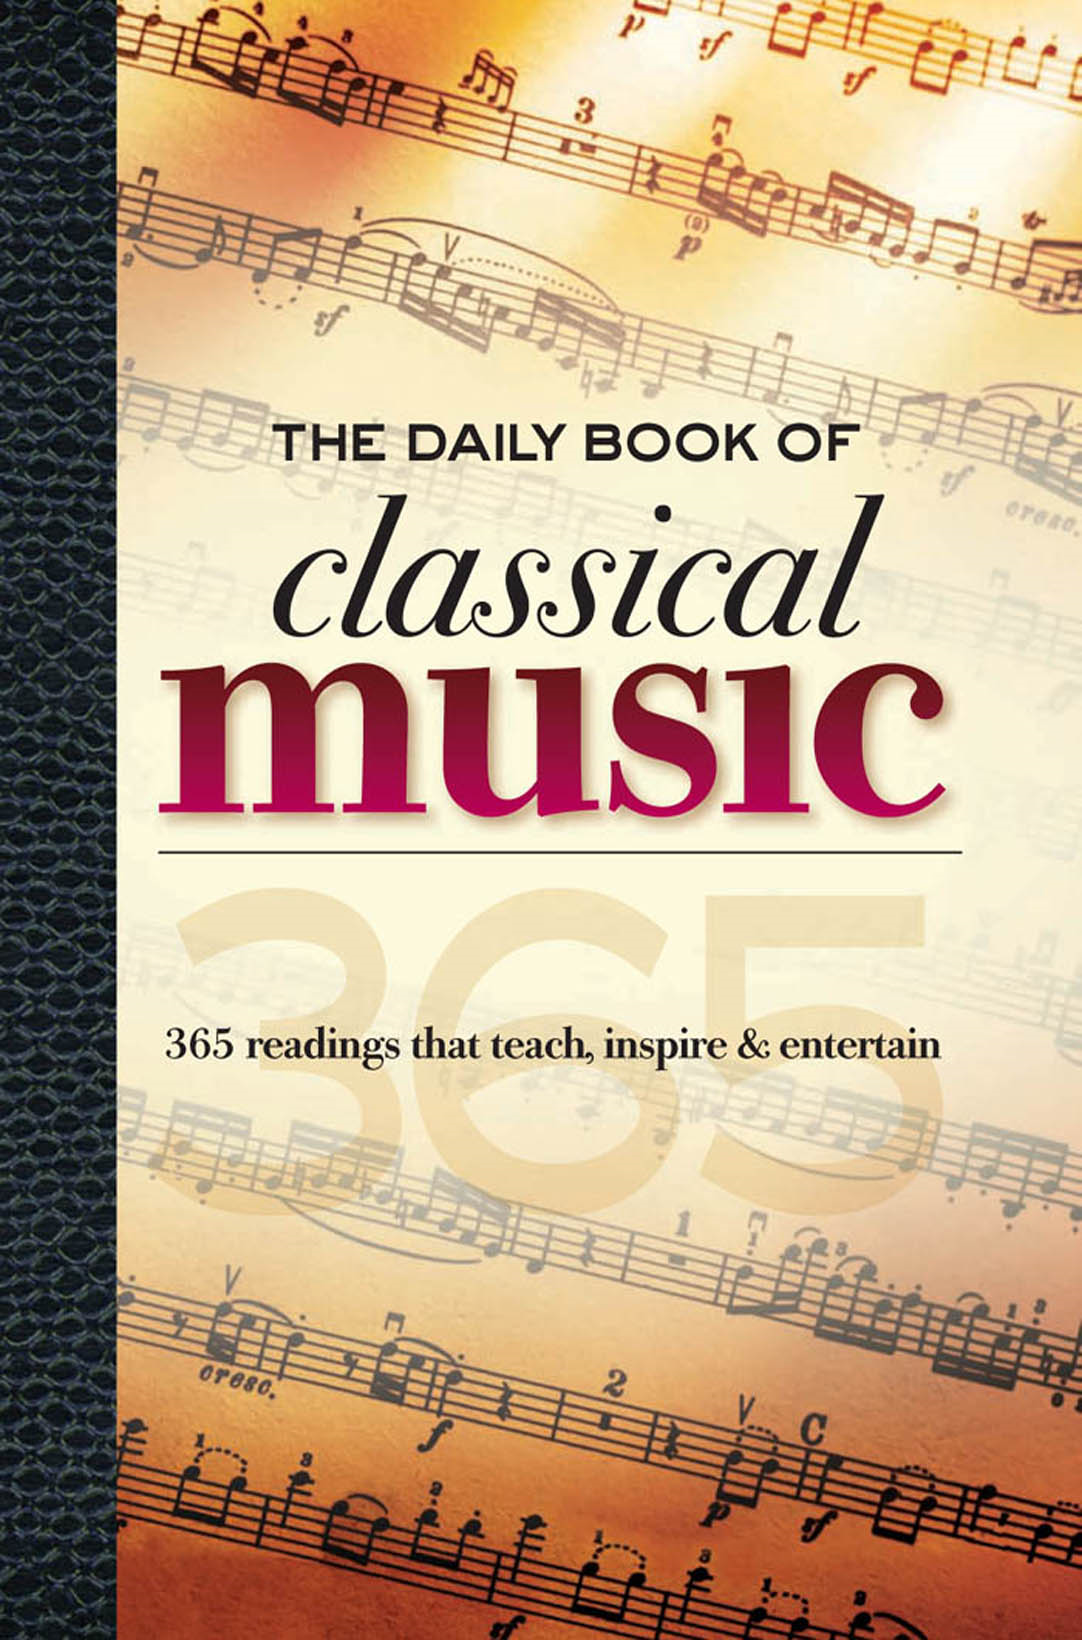 The Daily Book of Classical Music